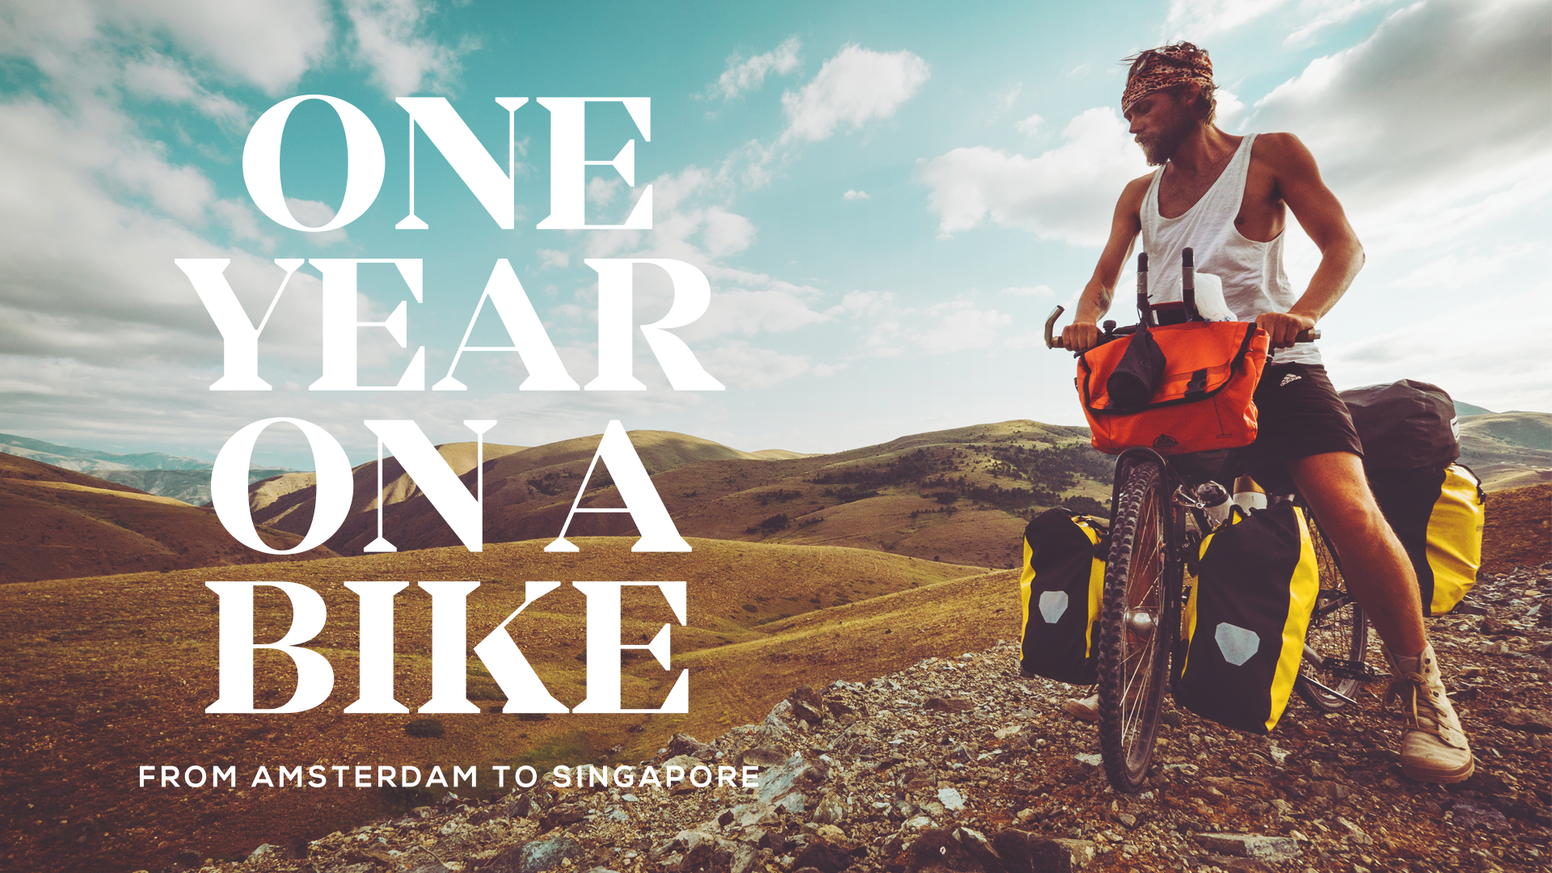 An adventure story of a solo bike traveller cycling from Amsterdam to Singapore, captured in a photo book.